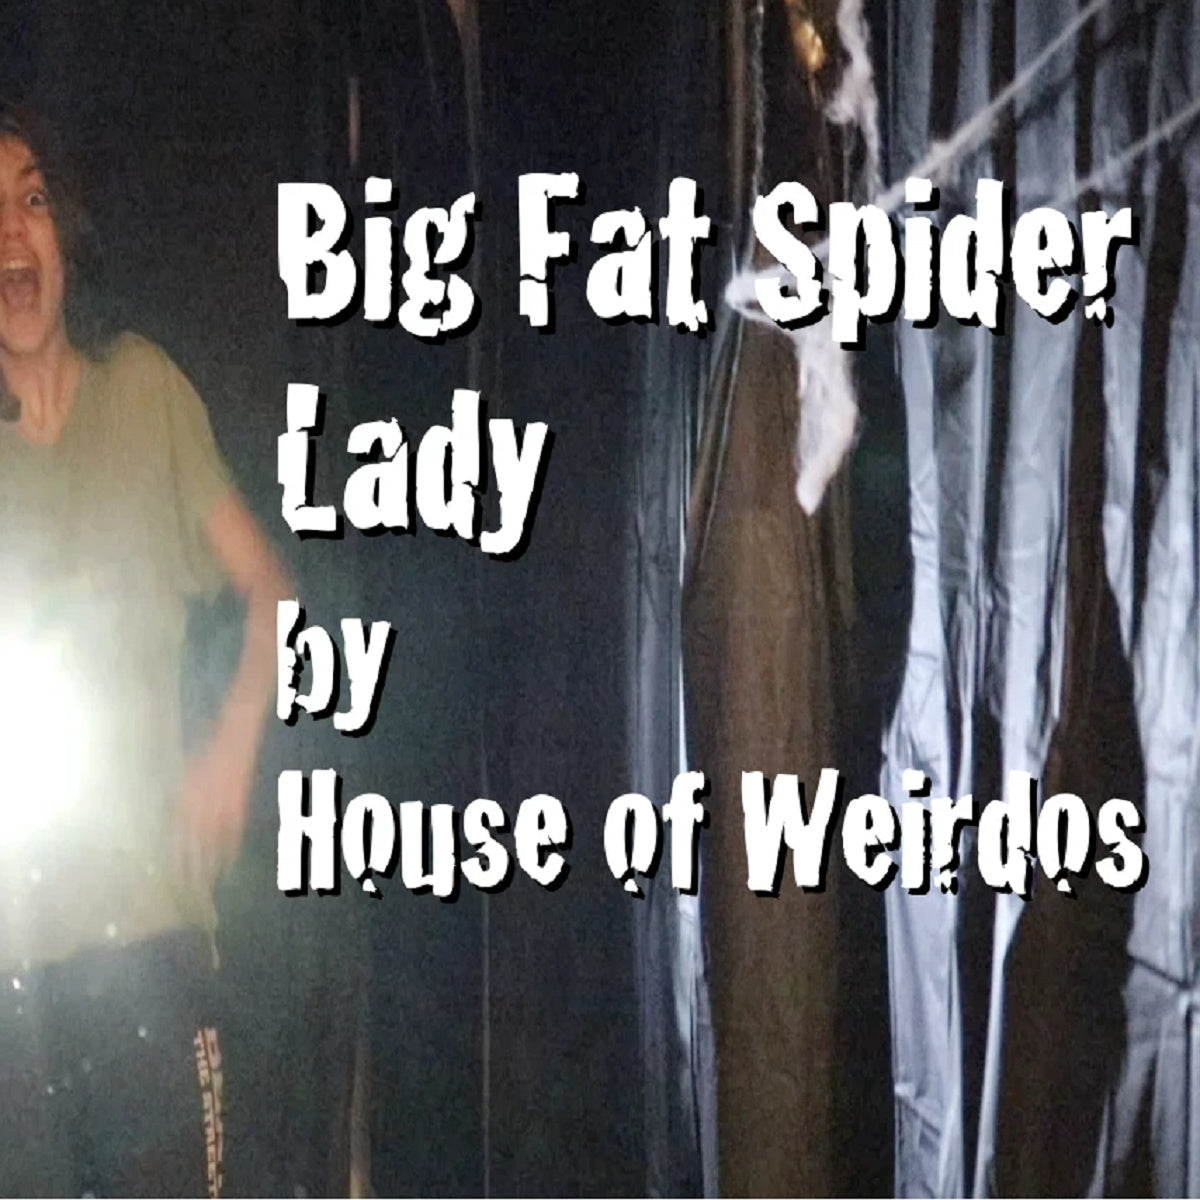 House of Weirdos – 'Big Fat Spider Lady'